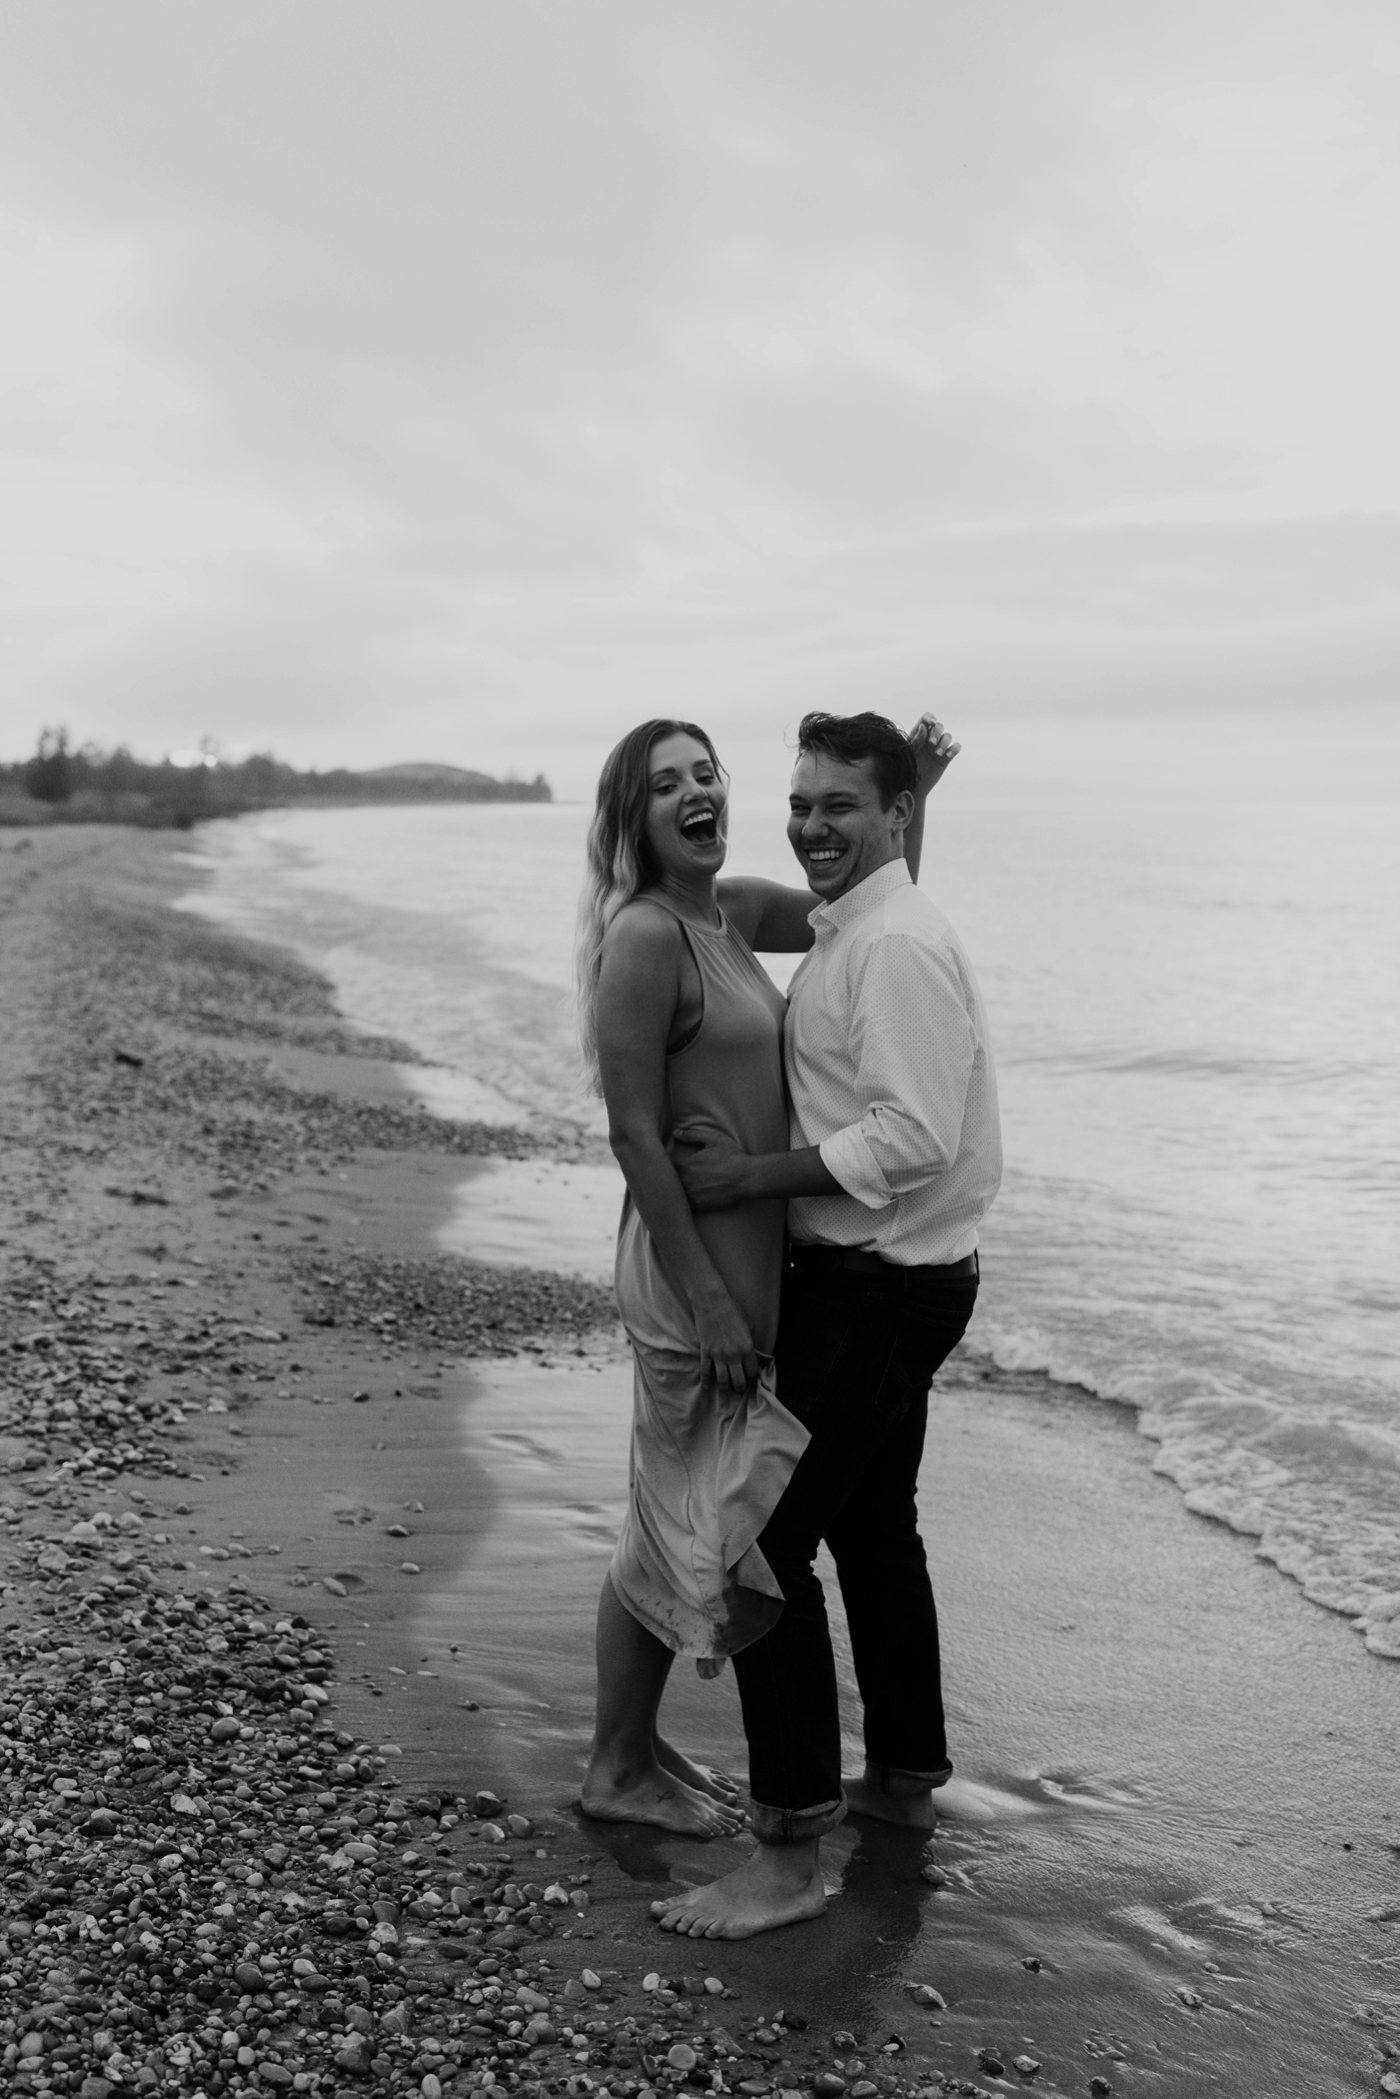 Sleeping_Bear_Dunes_Couples_Adventure_Session_Adventure_Wedding_Photographer_Hiking_with_Heels_Brett+Emily-70.jpg